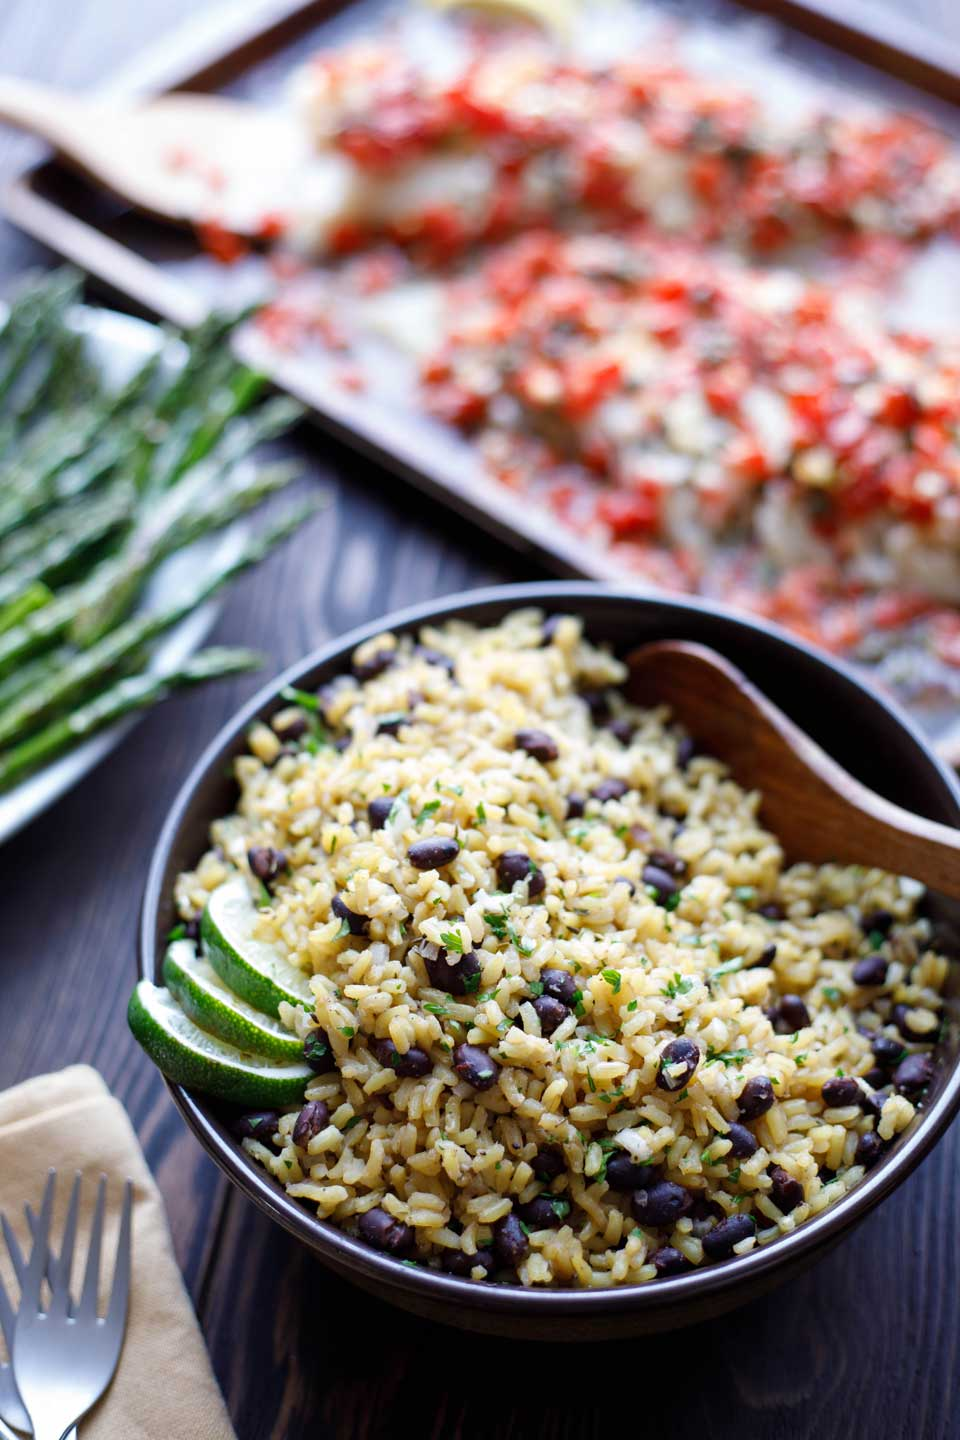 Serving bowl filled with Easy Black Beans and Rice in the foreground, with asparagus and a Matecumbe Fish in the background